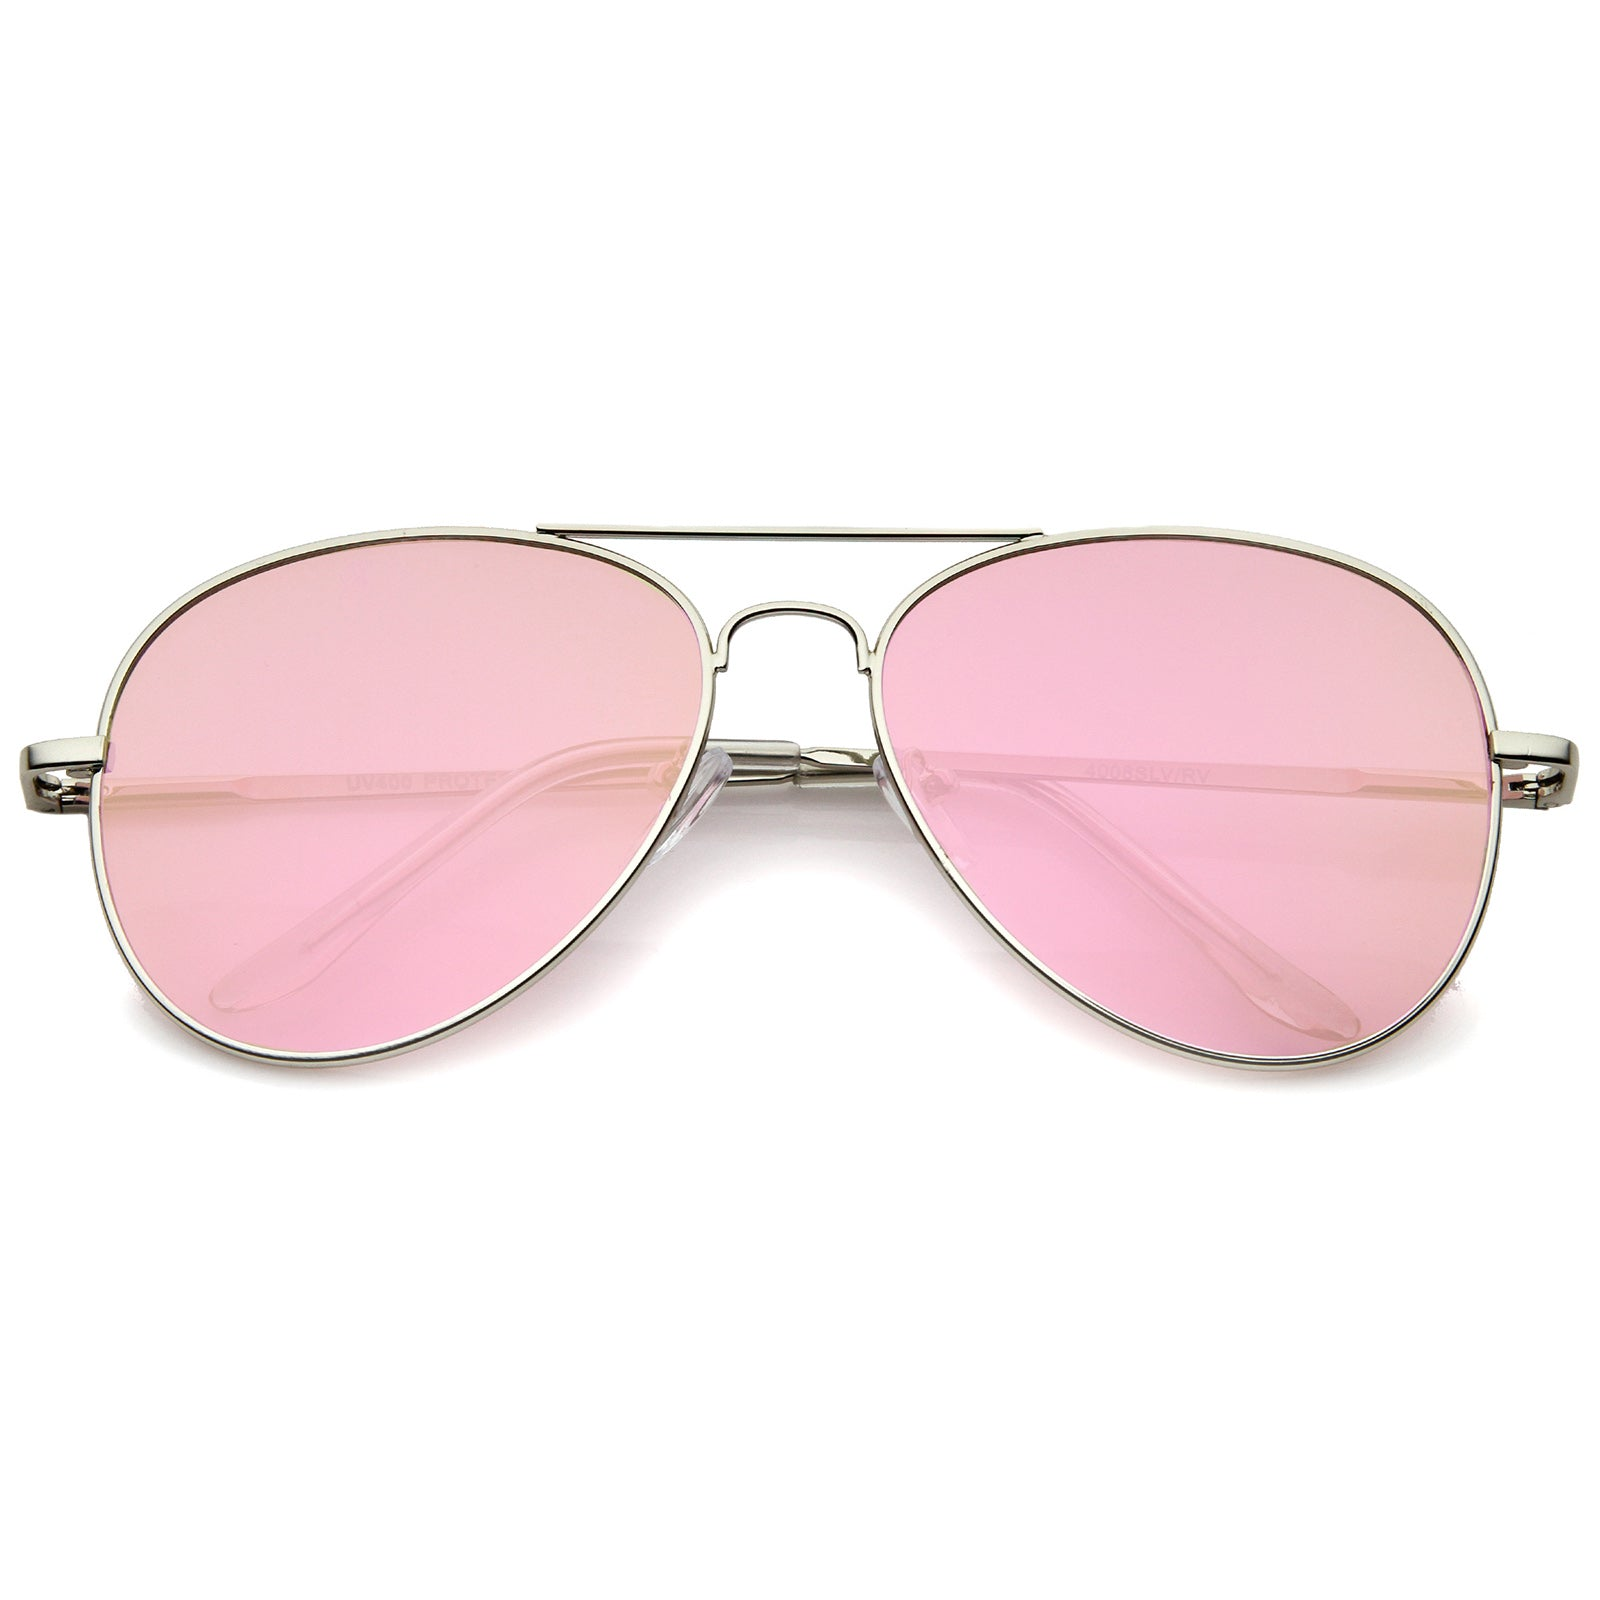 Small Full Metal Color Mirror Teardrop Flat Lens Aviator Sunglasses 56mm - sunglass.la - 1